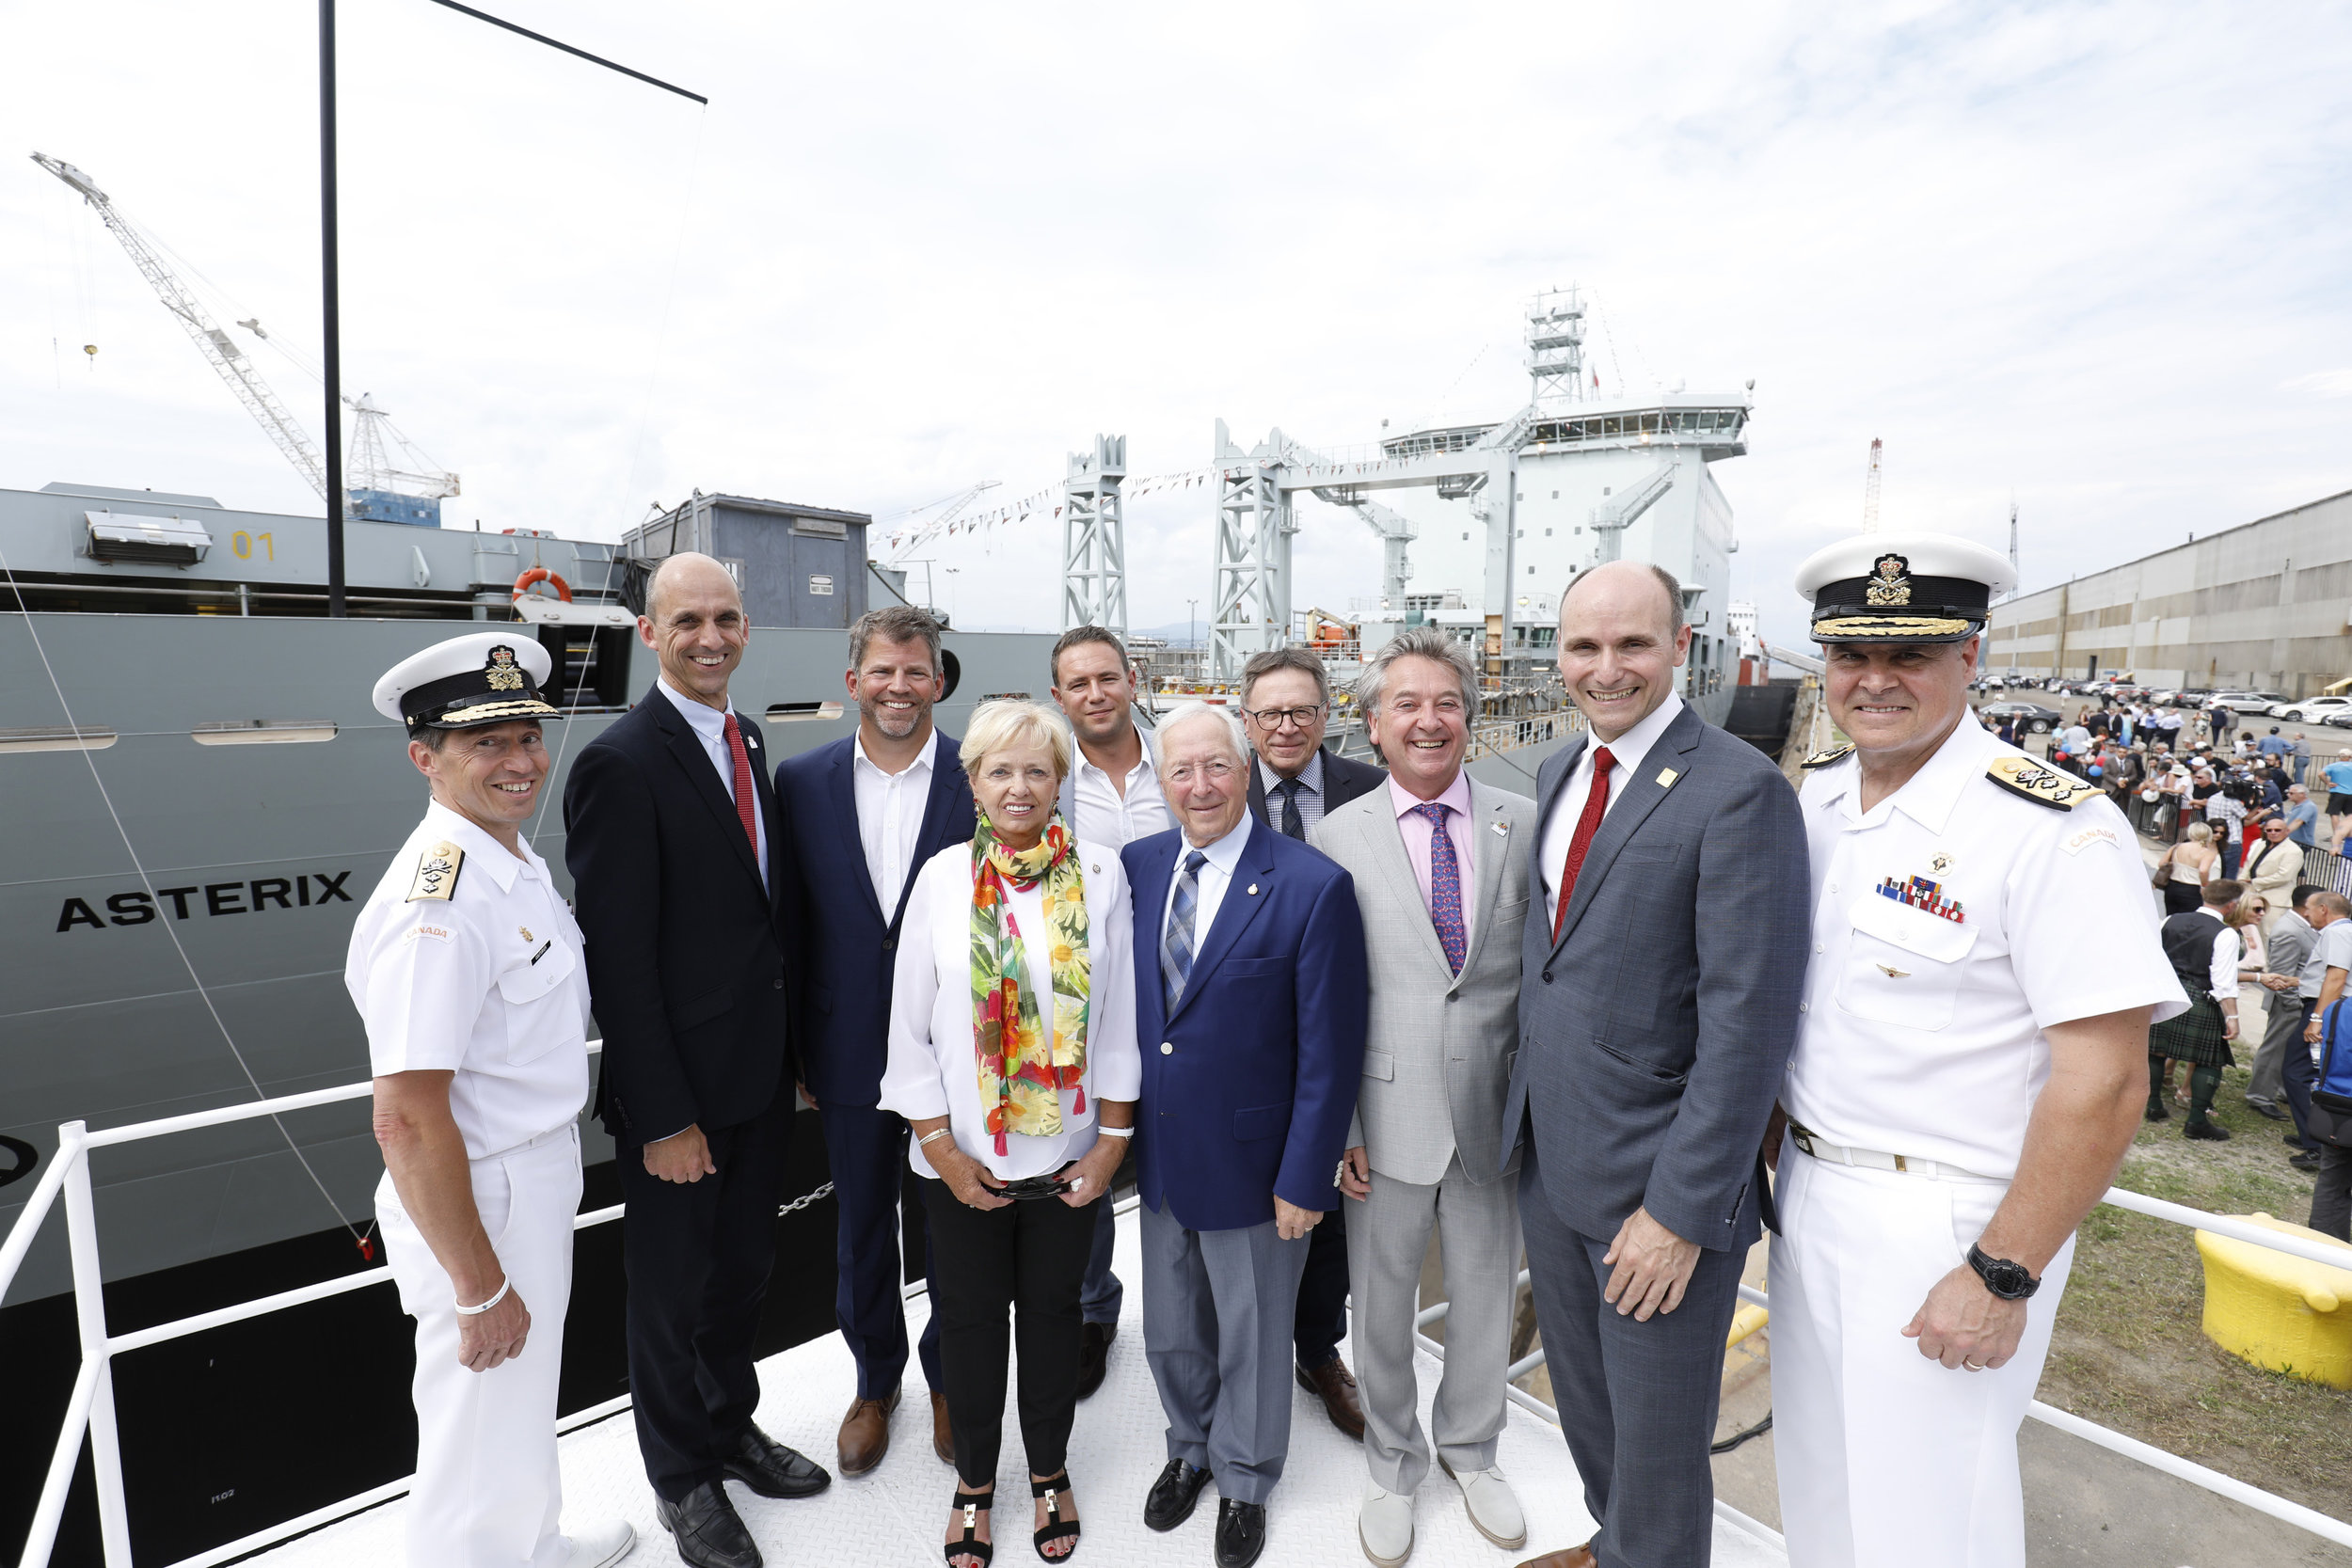 Thousands were on hand at the Chantier Davie shipyard in Lévis, Quebec to watch Canadian naval history in the making with the unveiling on July 20 of the Resolve-class Asterix — it is the first time a commercial vessel has been converted to conduct refuelling and resupply operations for the Canadian Armed Forces. Among those in attendance were RAdm Gilles Couturier, Steven Blaney, Spencer Fraser, Pauline Théberge, Alex Vicefield, Jacques Létourneau, Jean D'Amour, Gilles Lehouillier, Jean-Yves Duclos, and VAdm Ron Lloyd. (chantier davie)